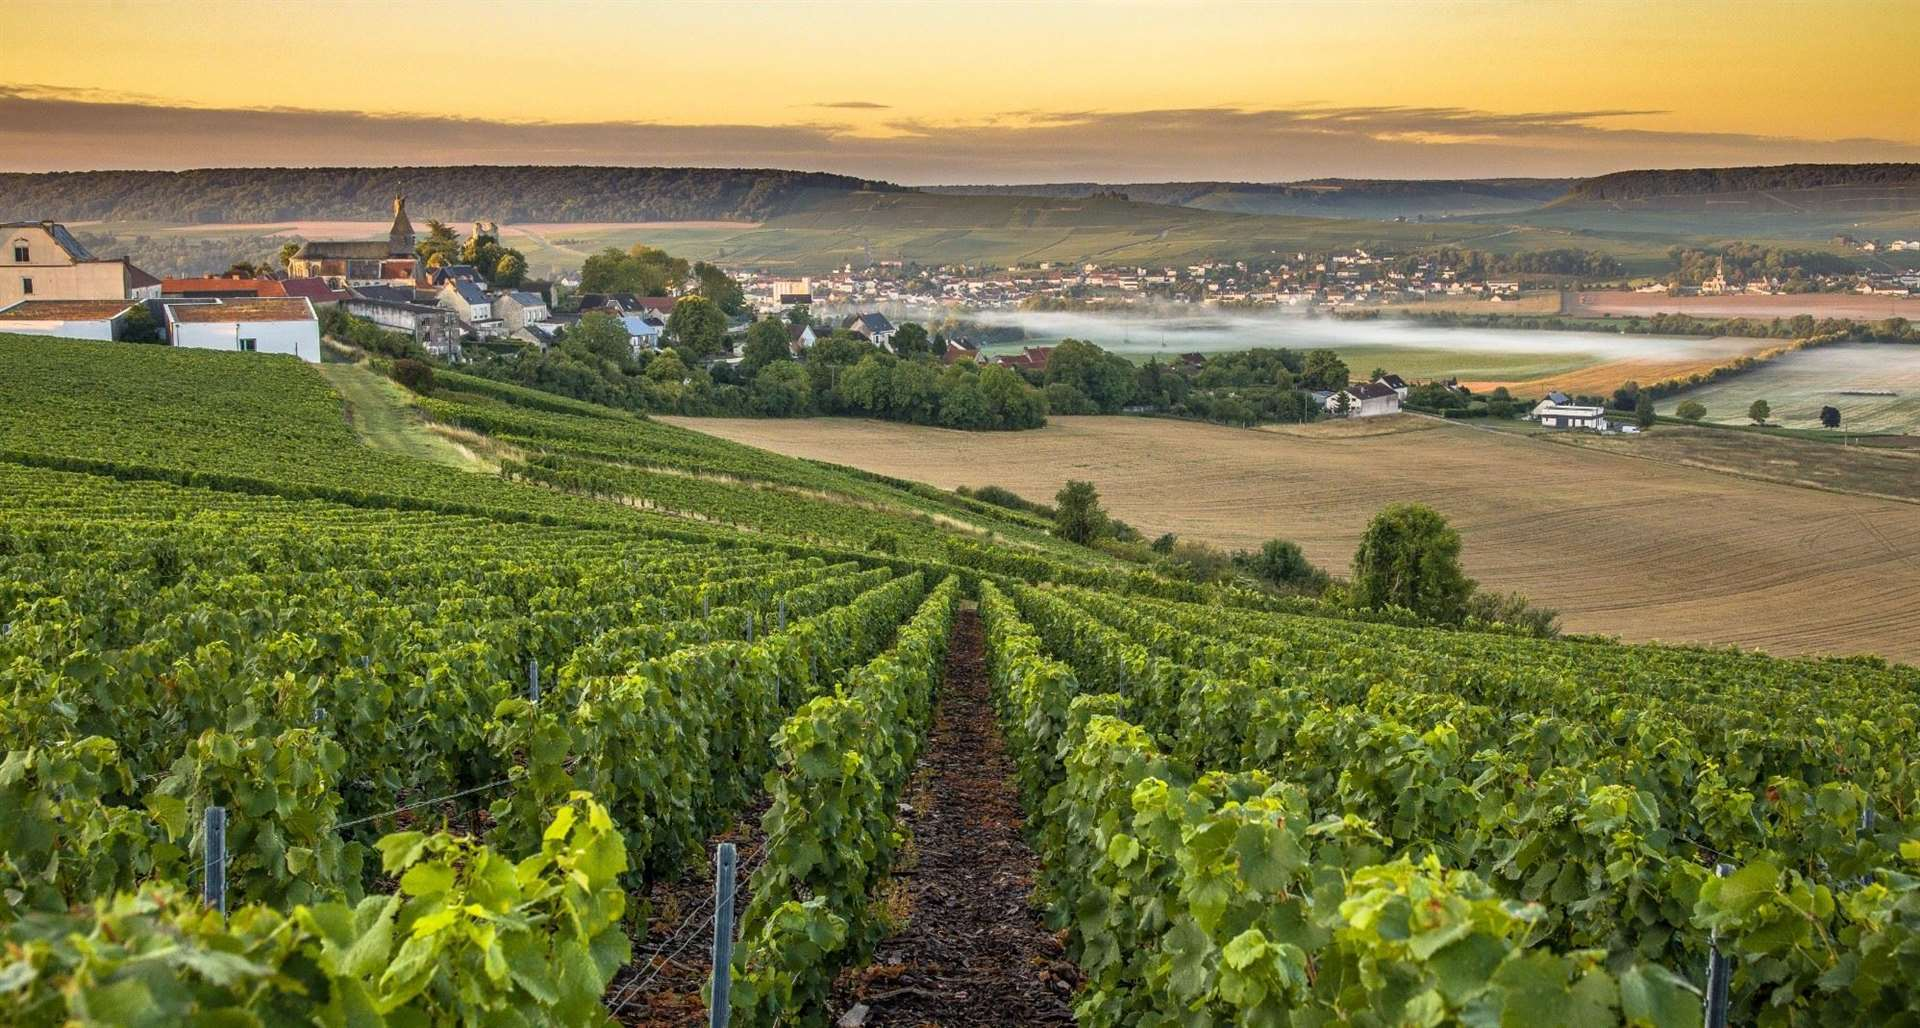 Found just outside of Paris, the popular region of Champagne produces what is widely regarded as the most renowned and recognisable wines in the world.